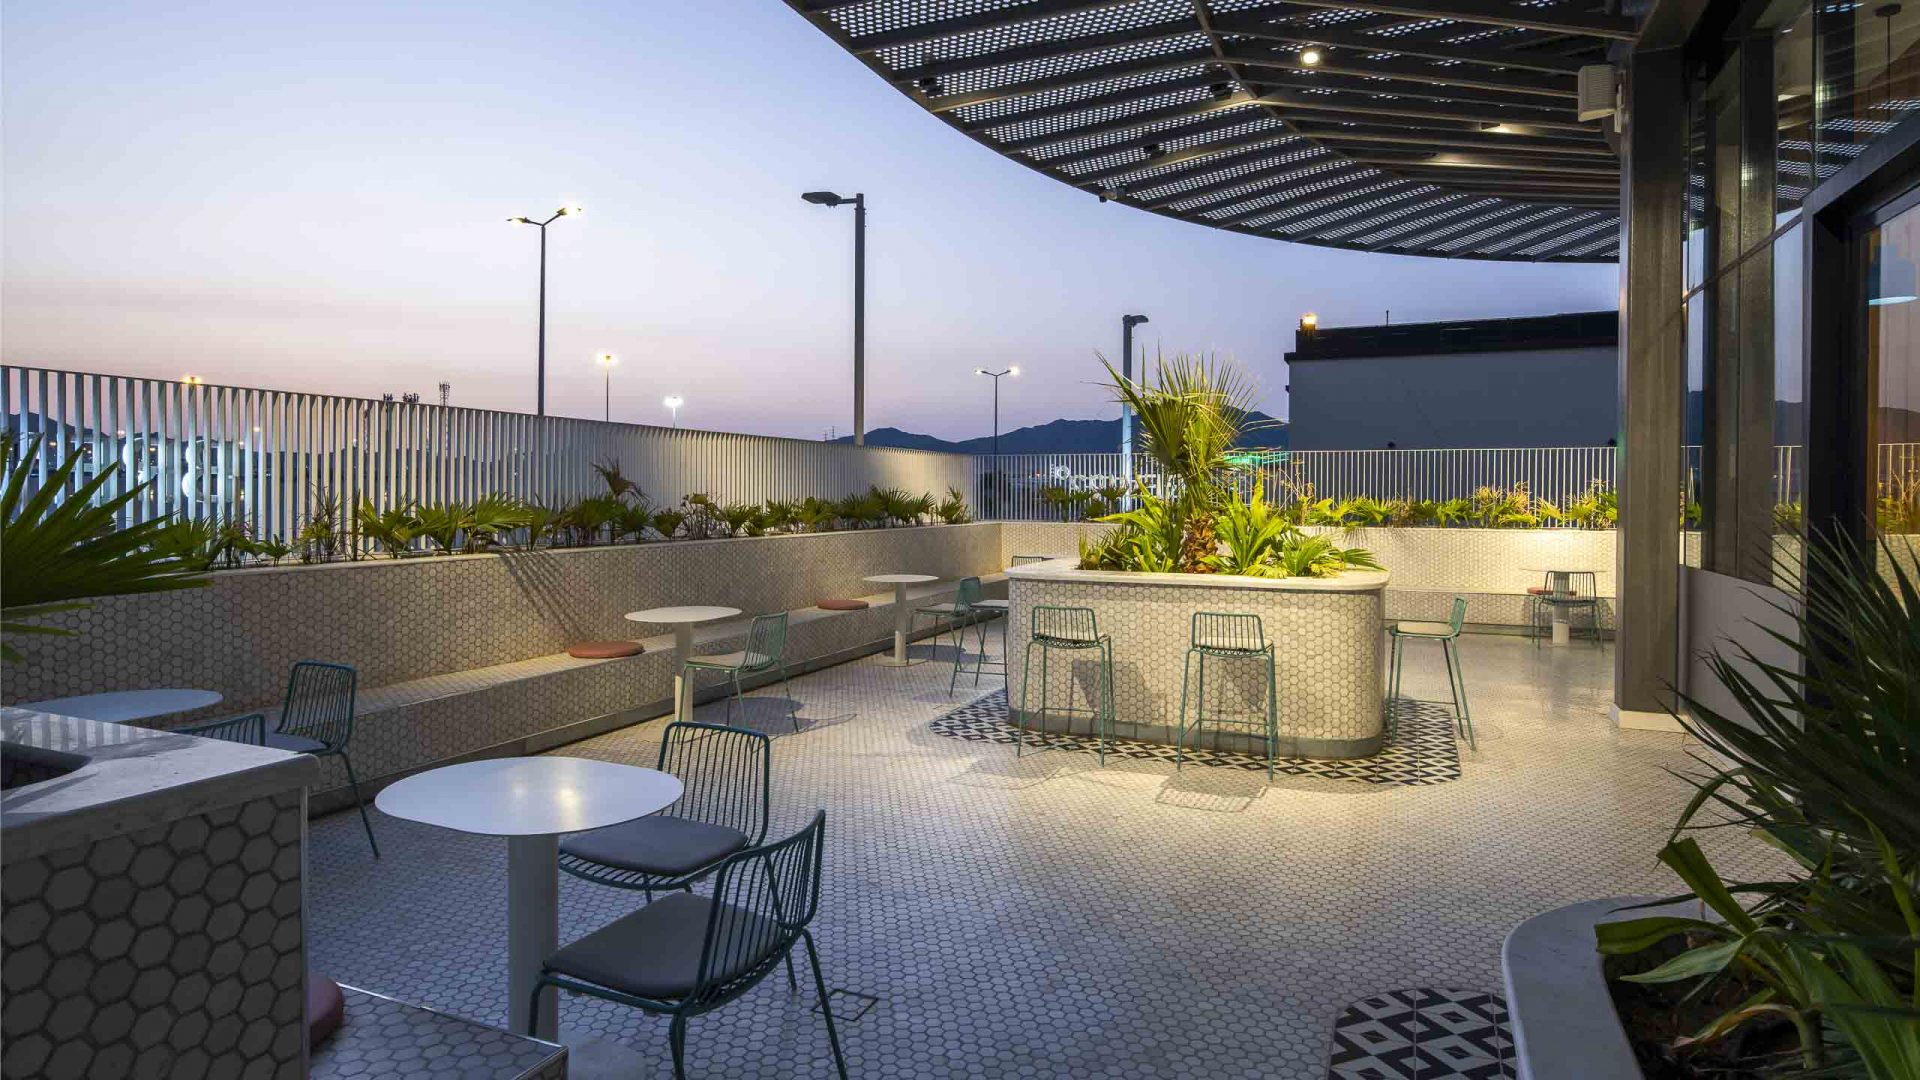 Brew92 Coffee Shop, Mecca by Liqui. Photograph of the ground floor exterior seating terrace